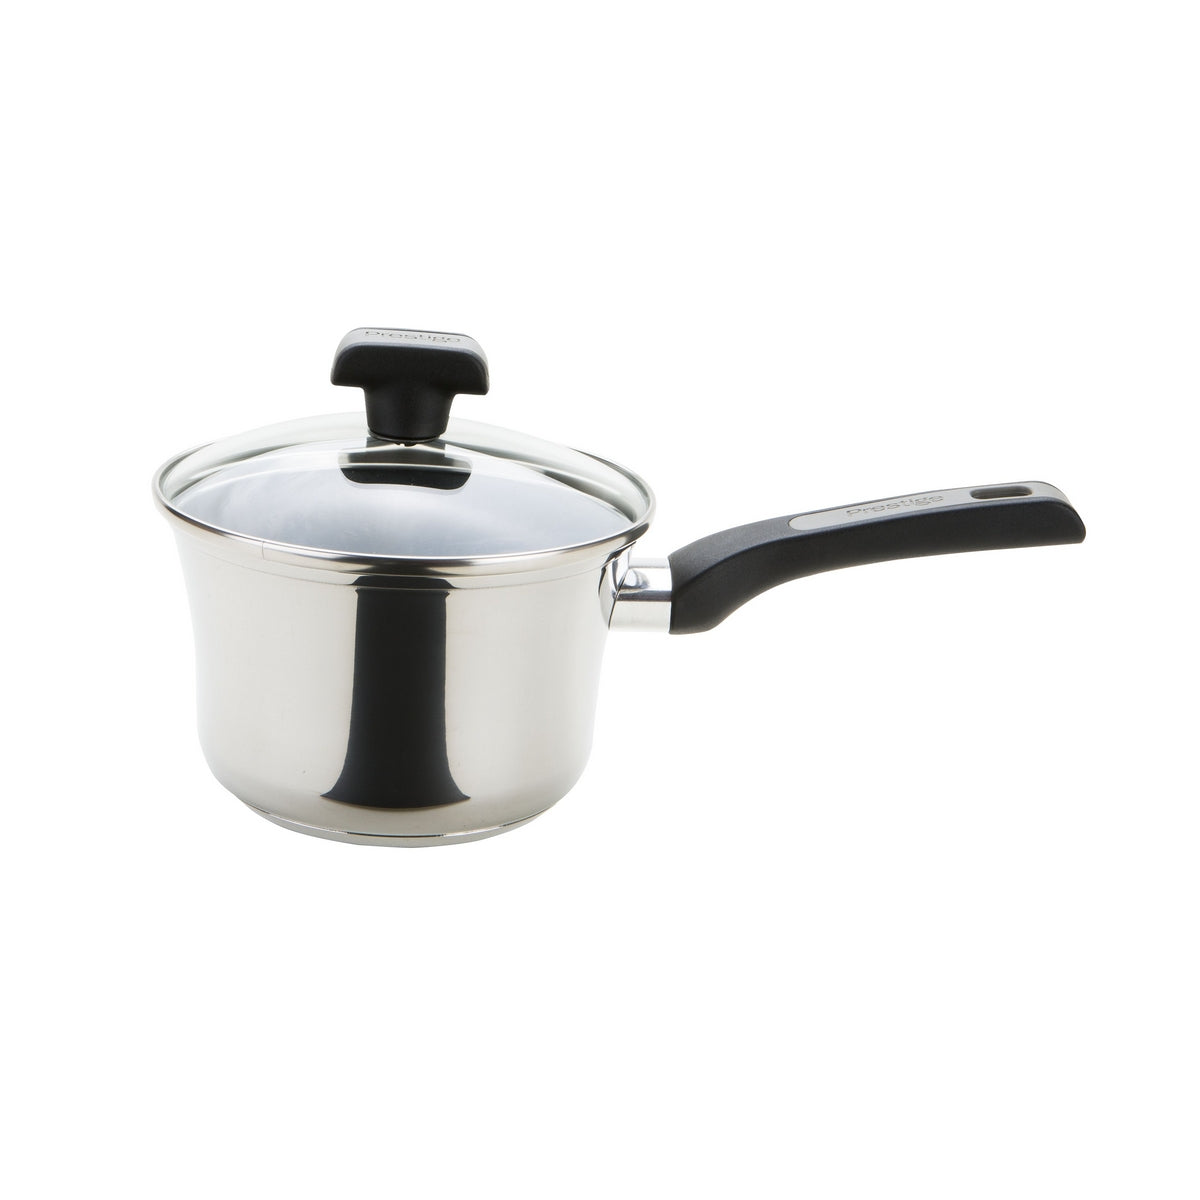 An image of Classic Non-Stick Stainless Steel Saucepan 18cm